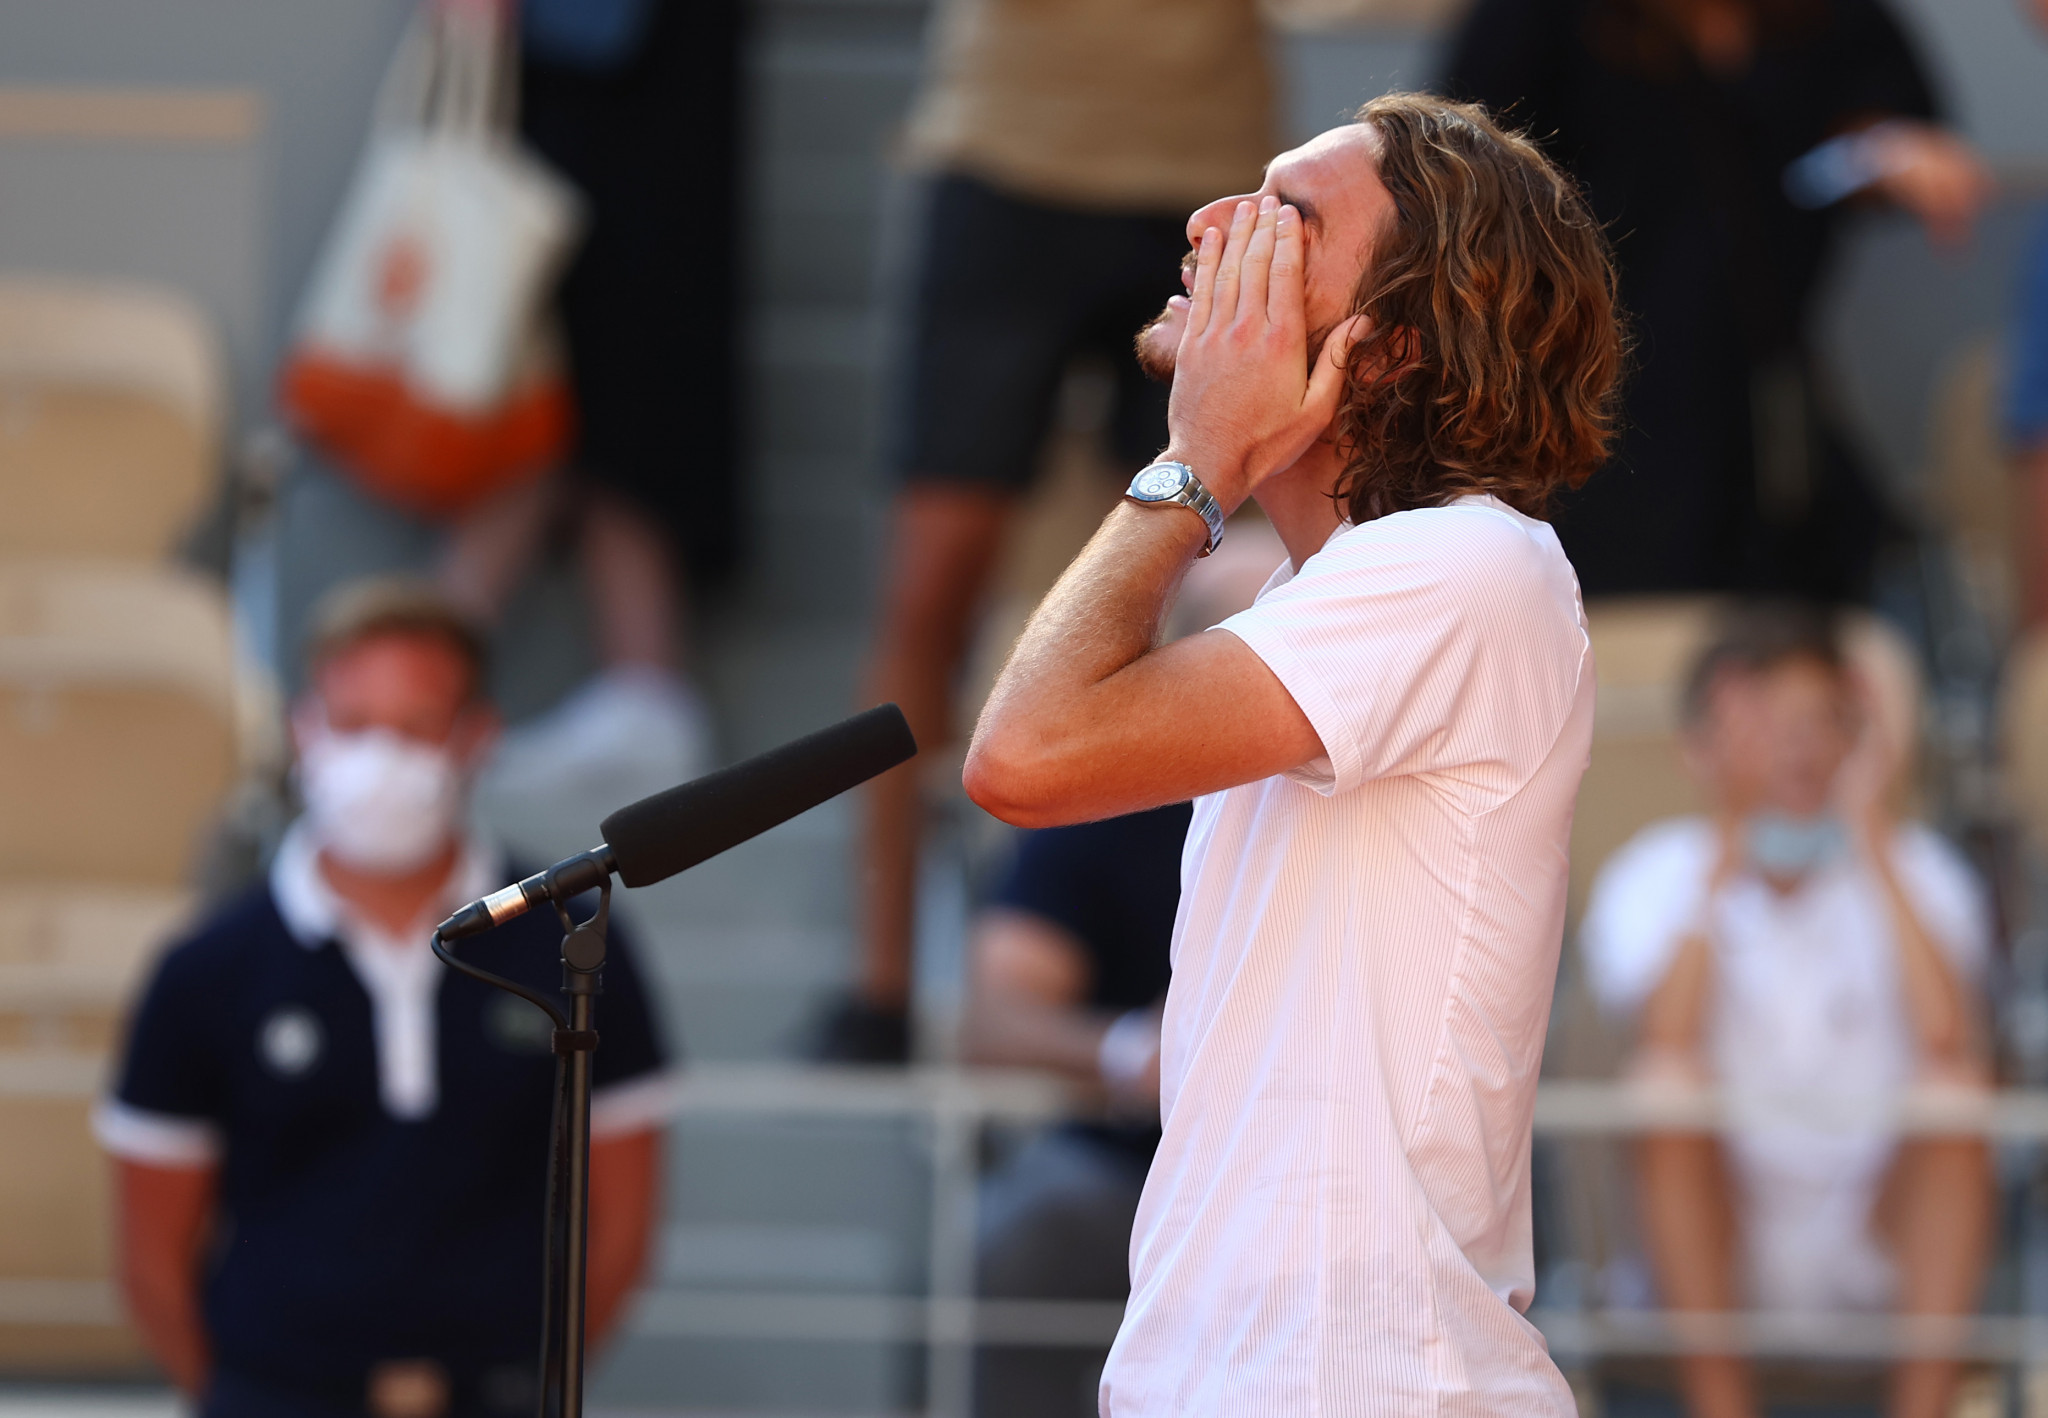 An emotional Stefanos Tsitsipas gives a tearful on-court interview after becoming the first Greek player to reach a Grand Slam final ©Getty Images